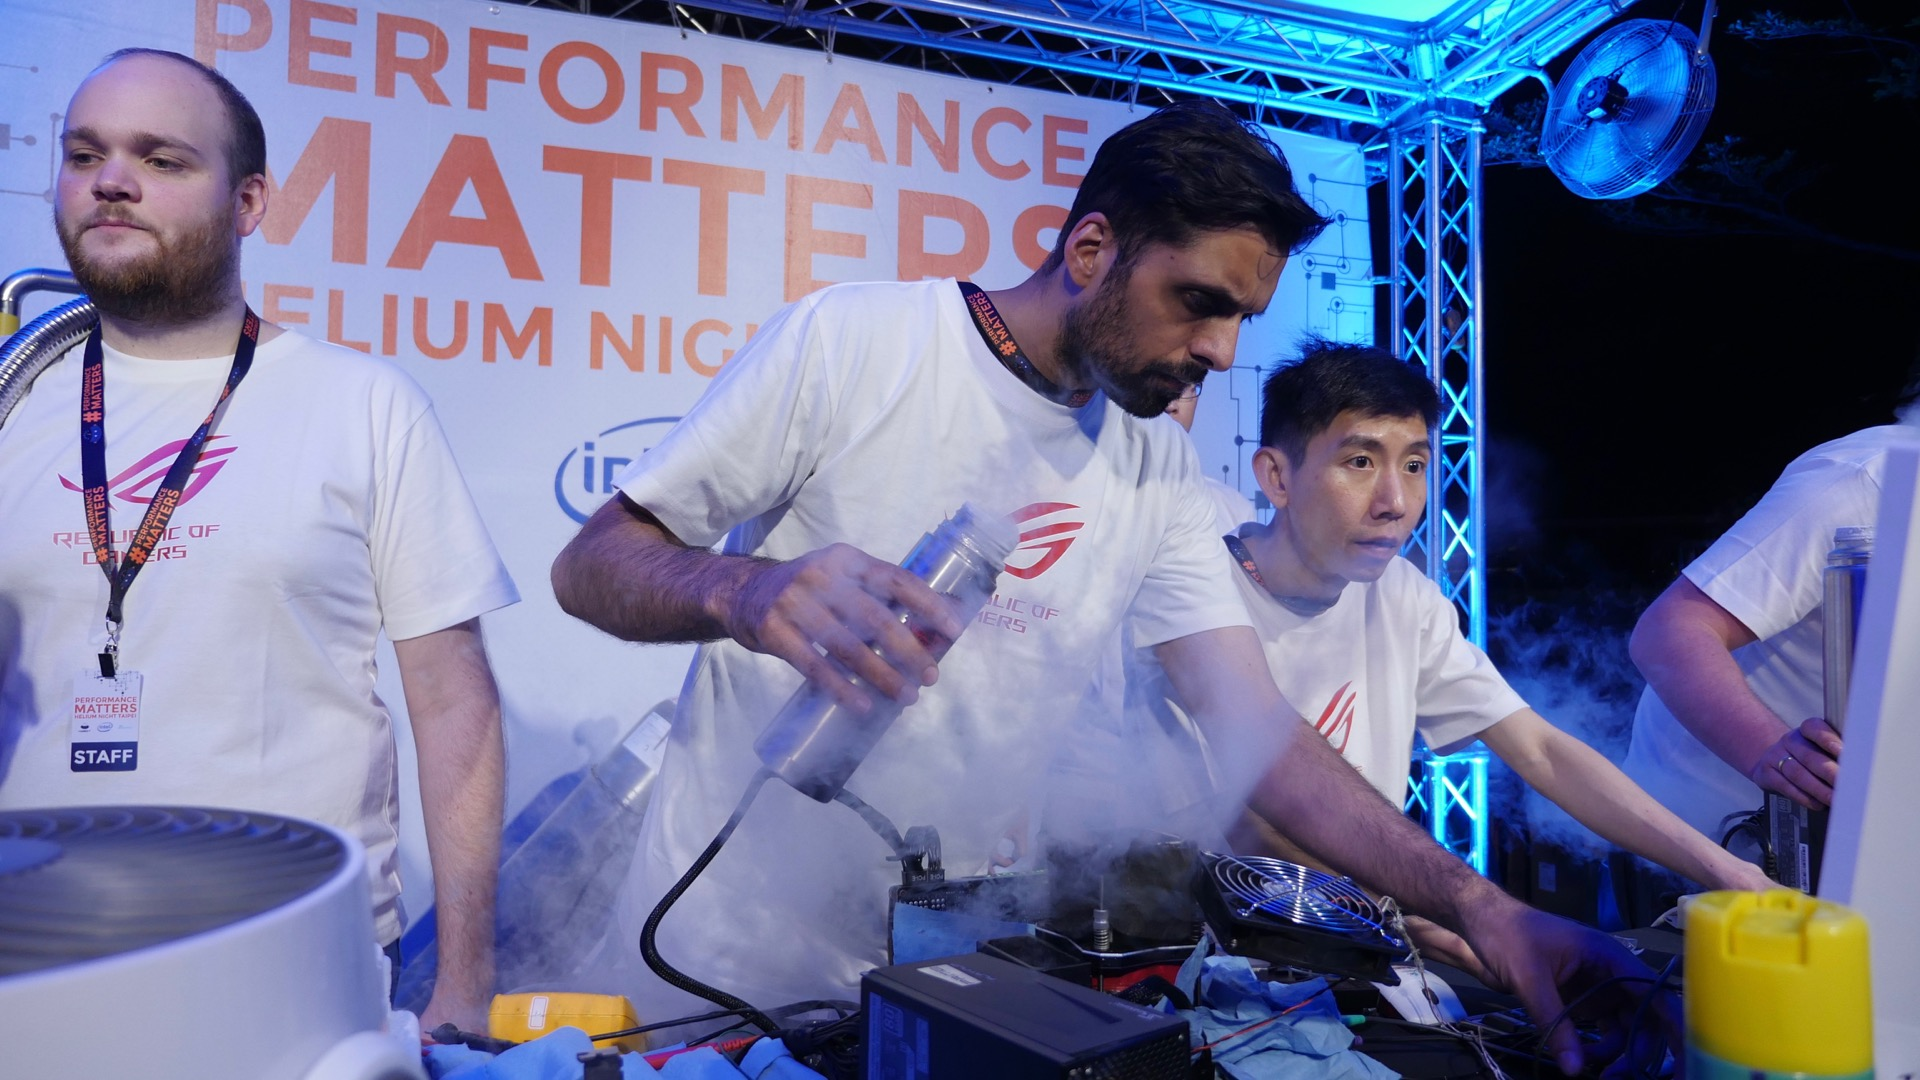 Helium Night Taipei - Liquid Nitrogen overclocking